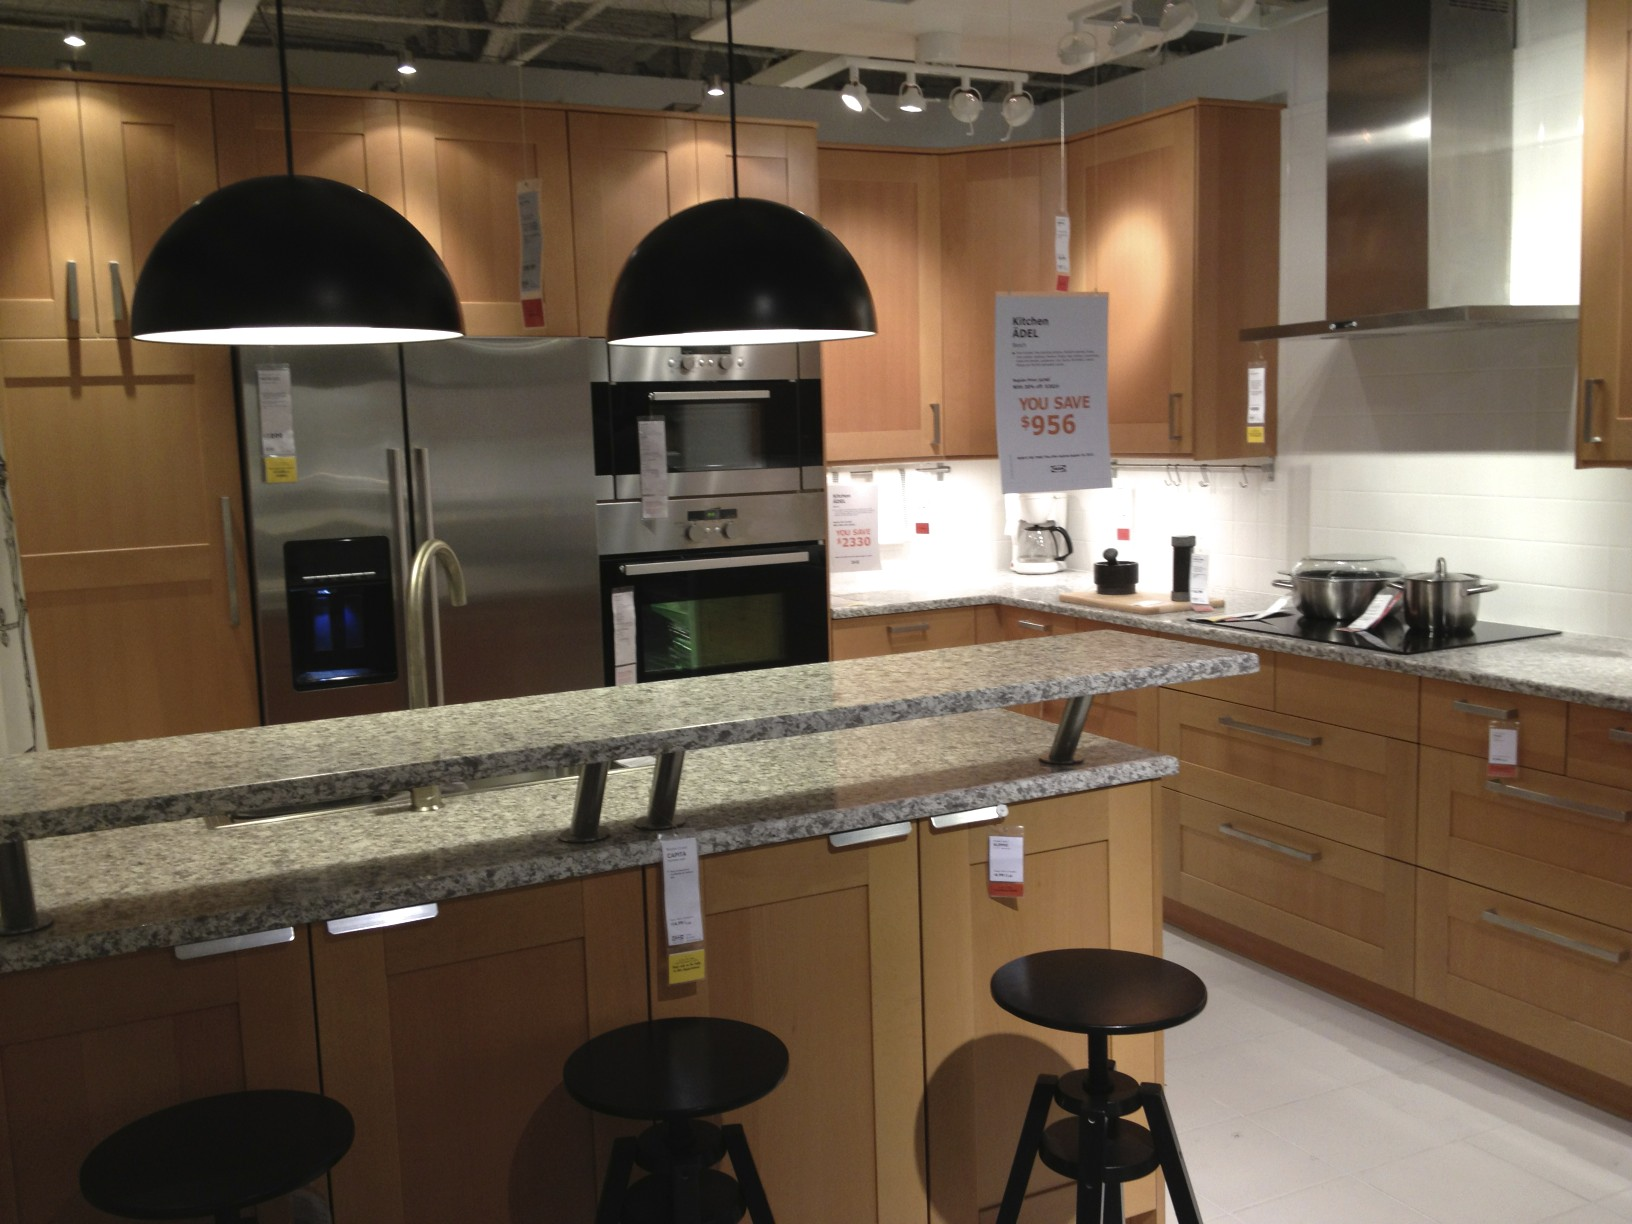 Images Of Stainless Steel Kitchen Islands And Breakfast Bar